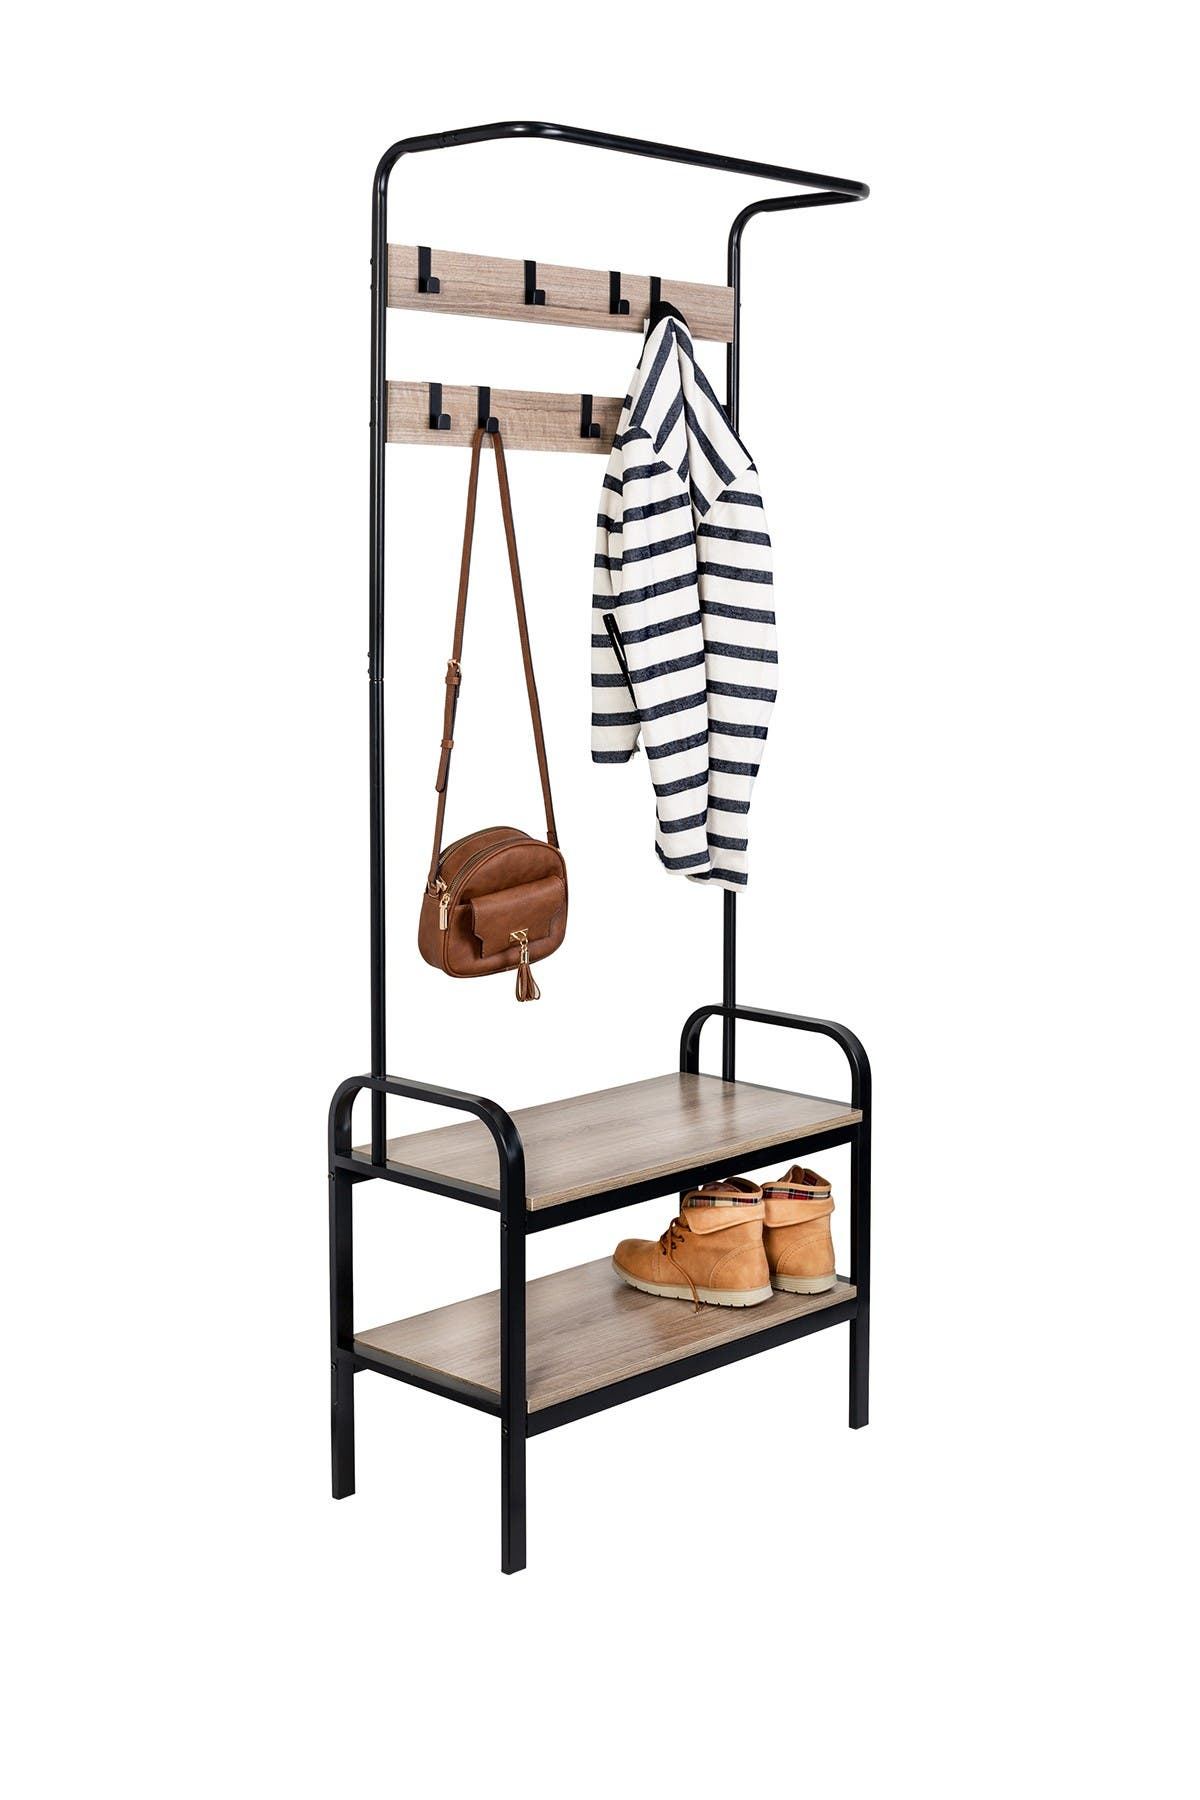 Image of Honey-Can-Do Entry Rack & Bench